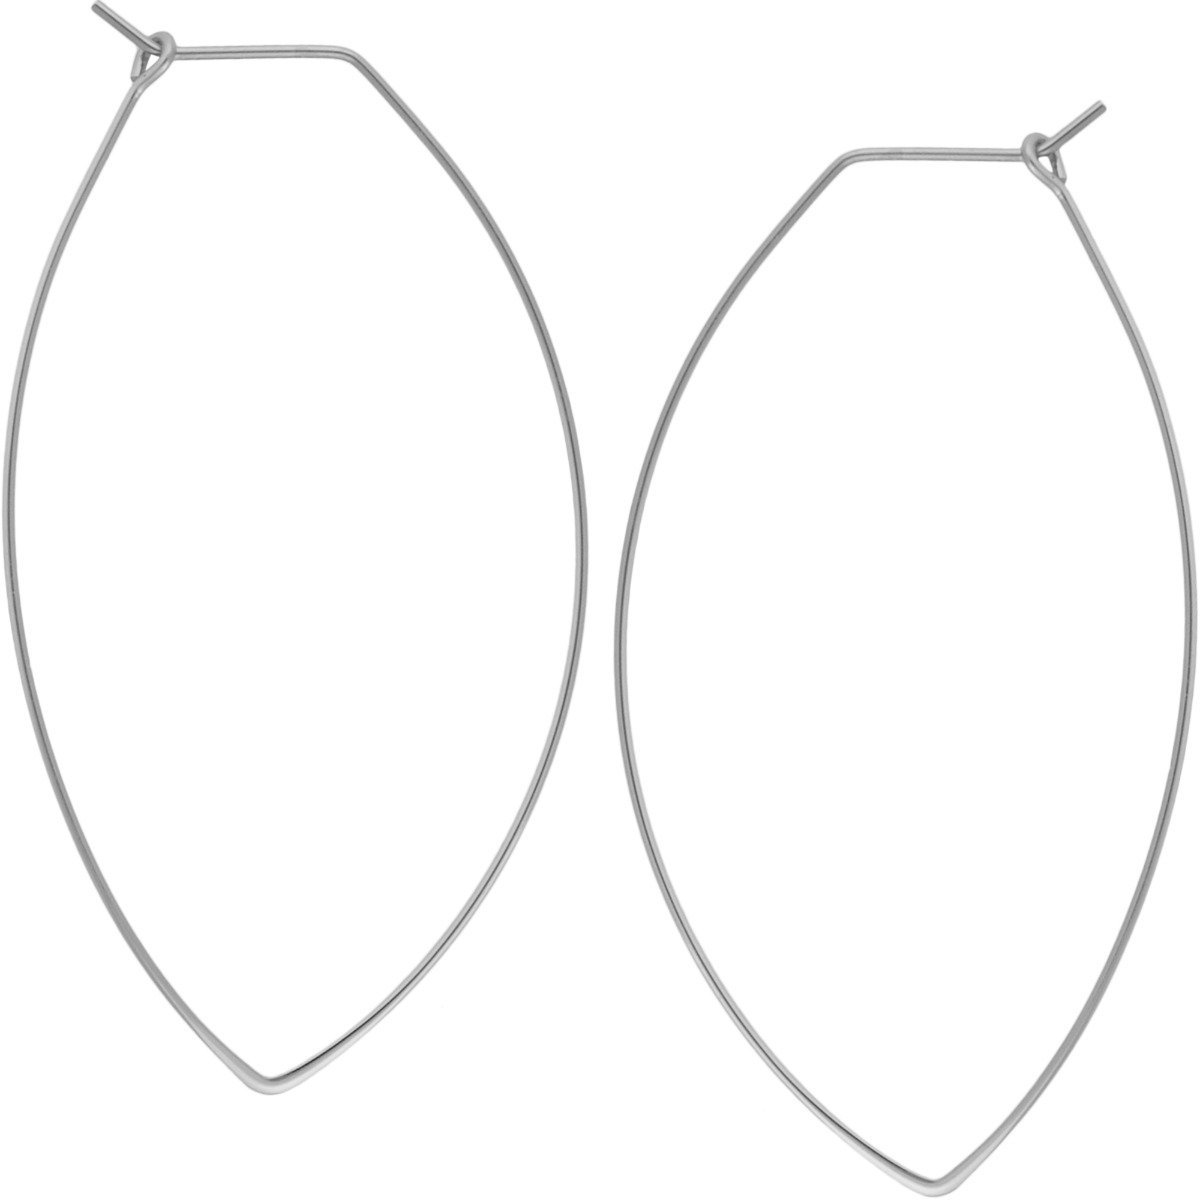 Marquise Threader Big Hoop Earrings - Lightweight Oval Leaf Statement Drop Dangles, Marquise 925 White, Sterling Silver-Electroplated, Hypoallergenic, by Humble Chic NY